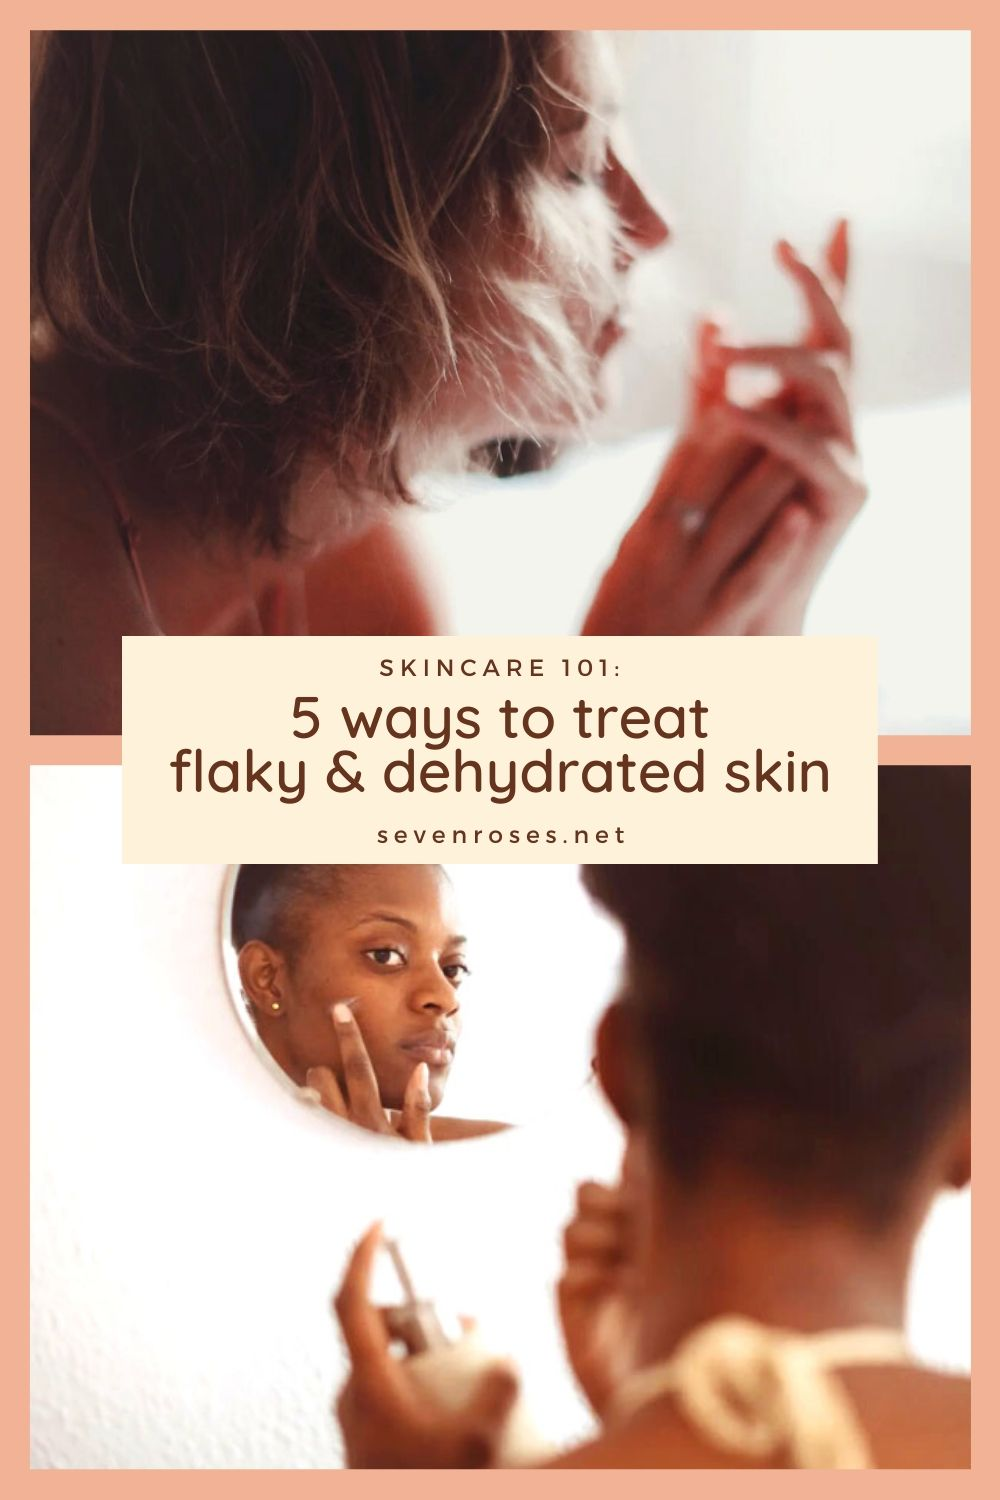 Skincare 101: 5 ways to treat flaky & dehydrated skin